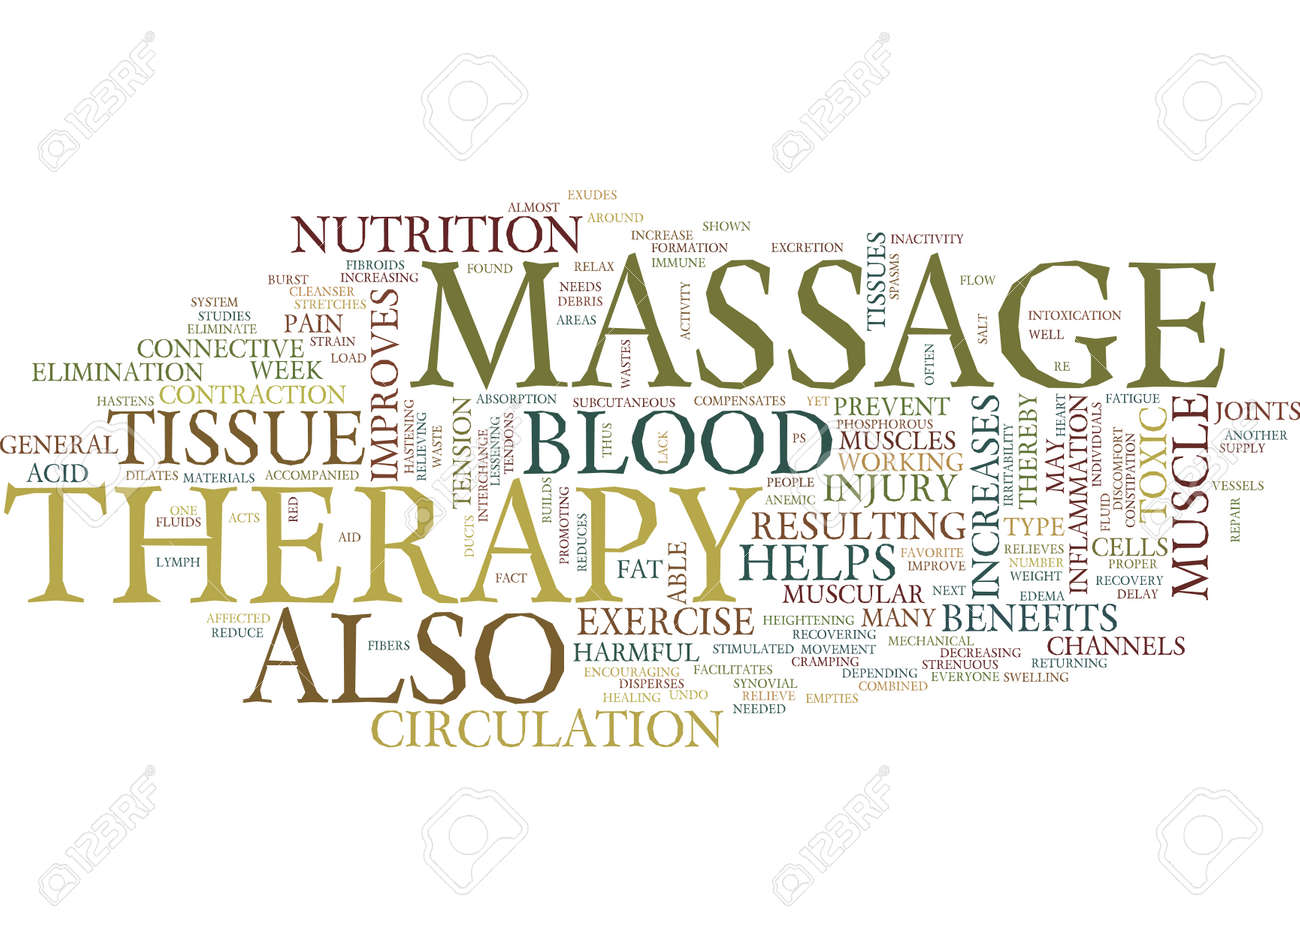 MASSAGE THERAPY BENEFITS Text Background Word Cloud Concept - 82726511